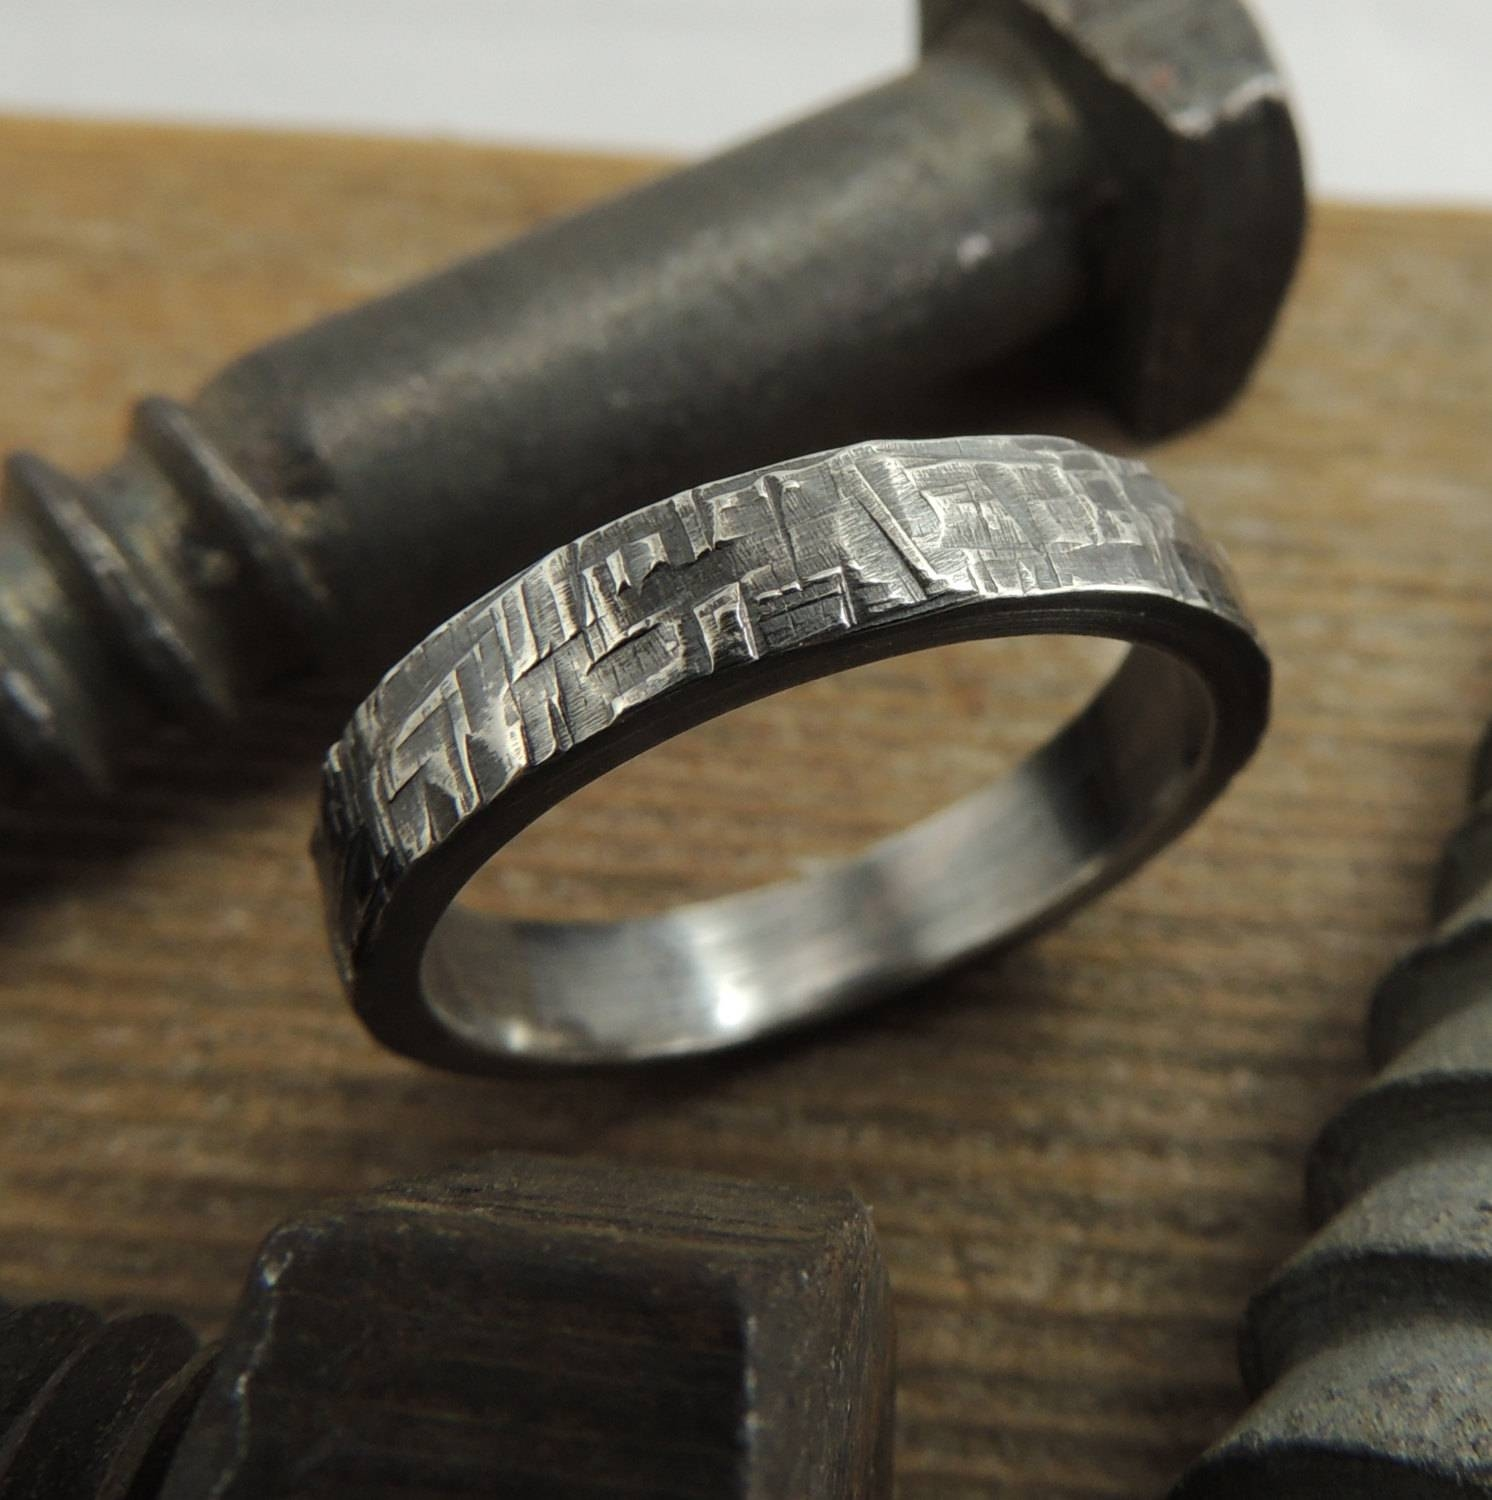 Most Popular Wedding Rings: Mens Wedding Ring Handmade Pertaining To Hipster Wedding Bands (View 10 of 15)